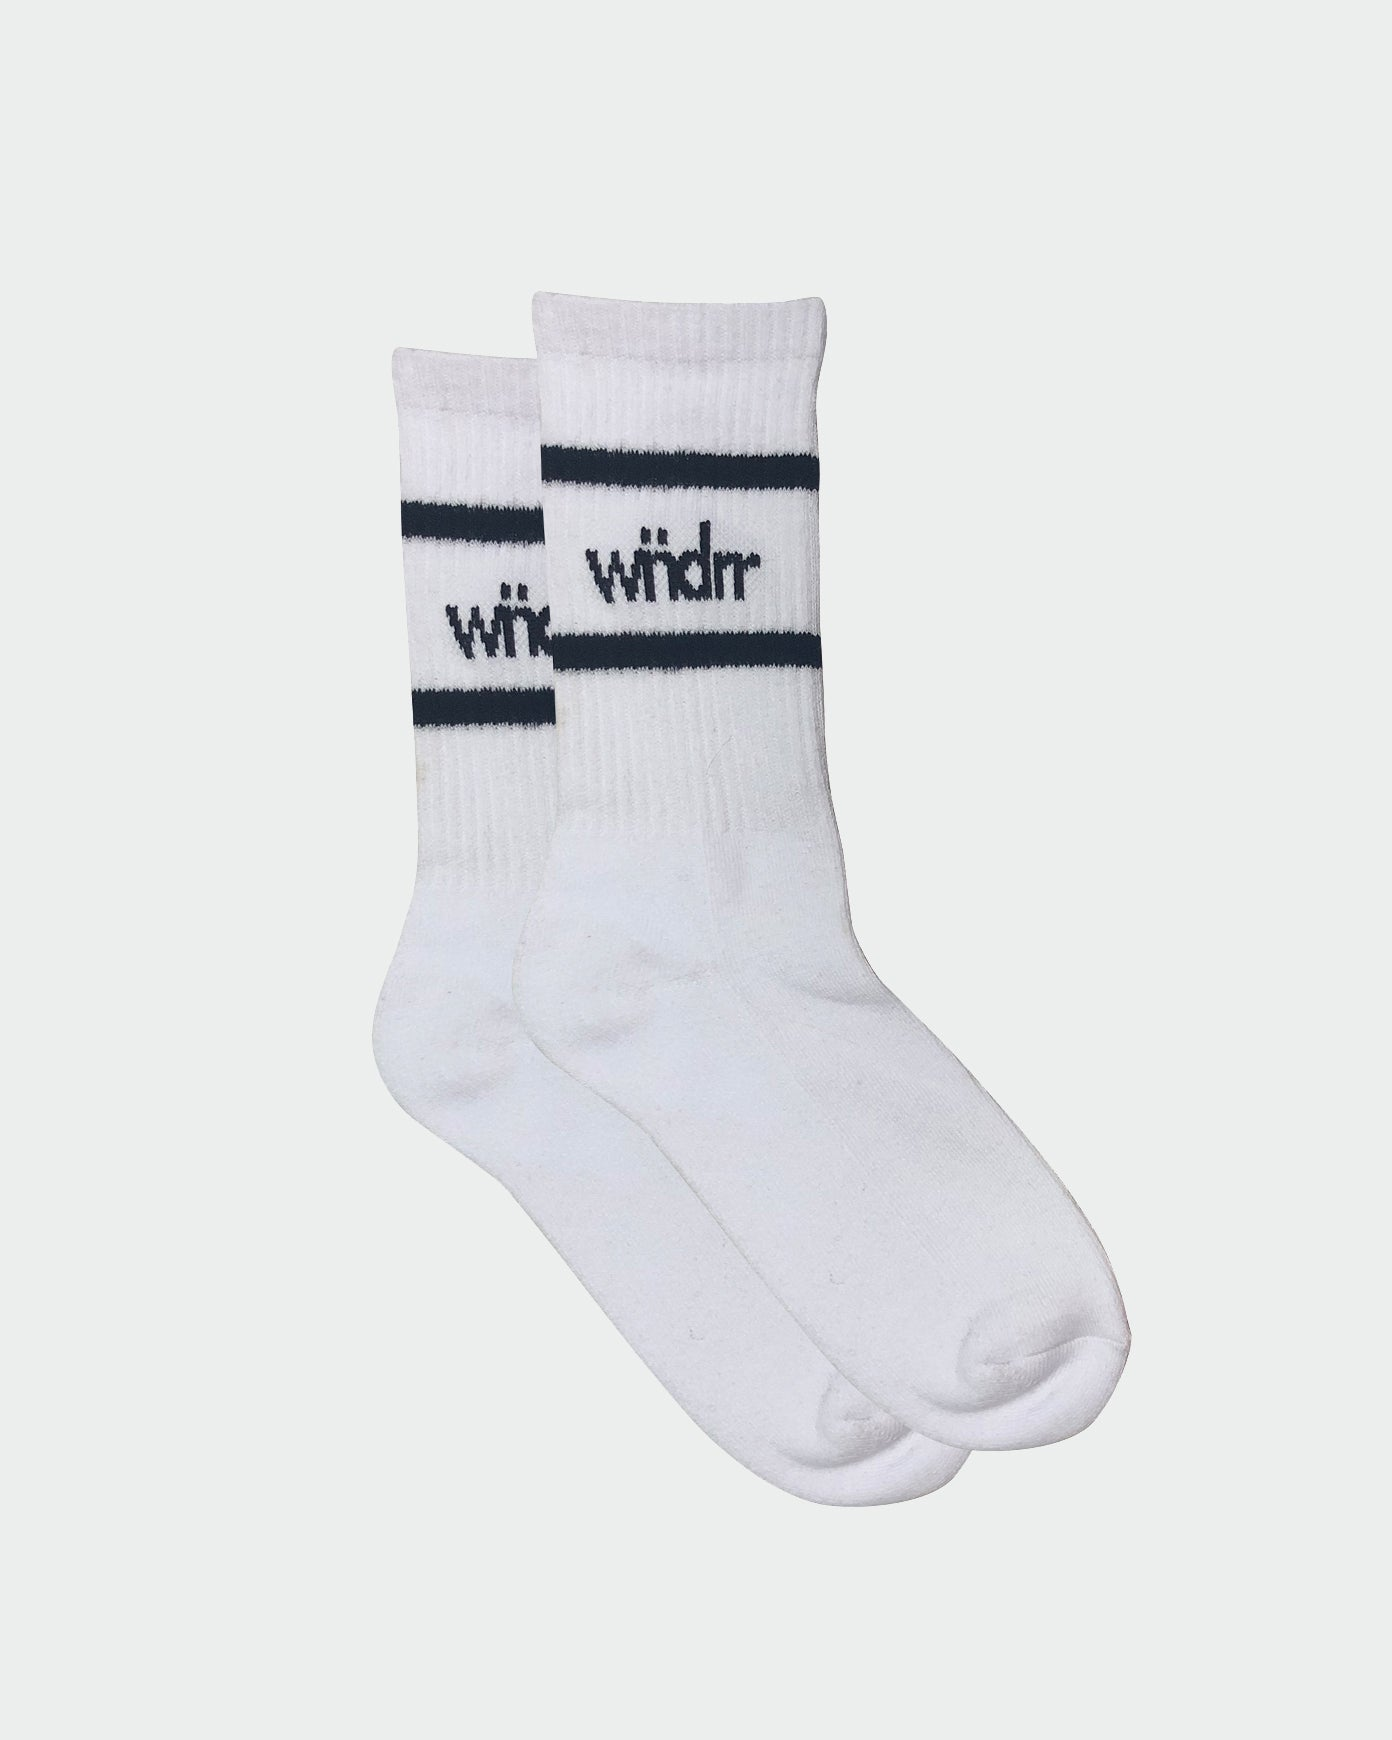 Wndrr Accent Socks 3 Pack - White